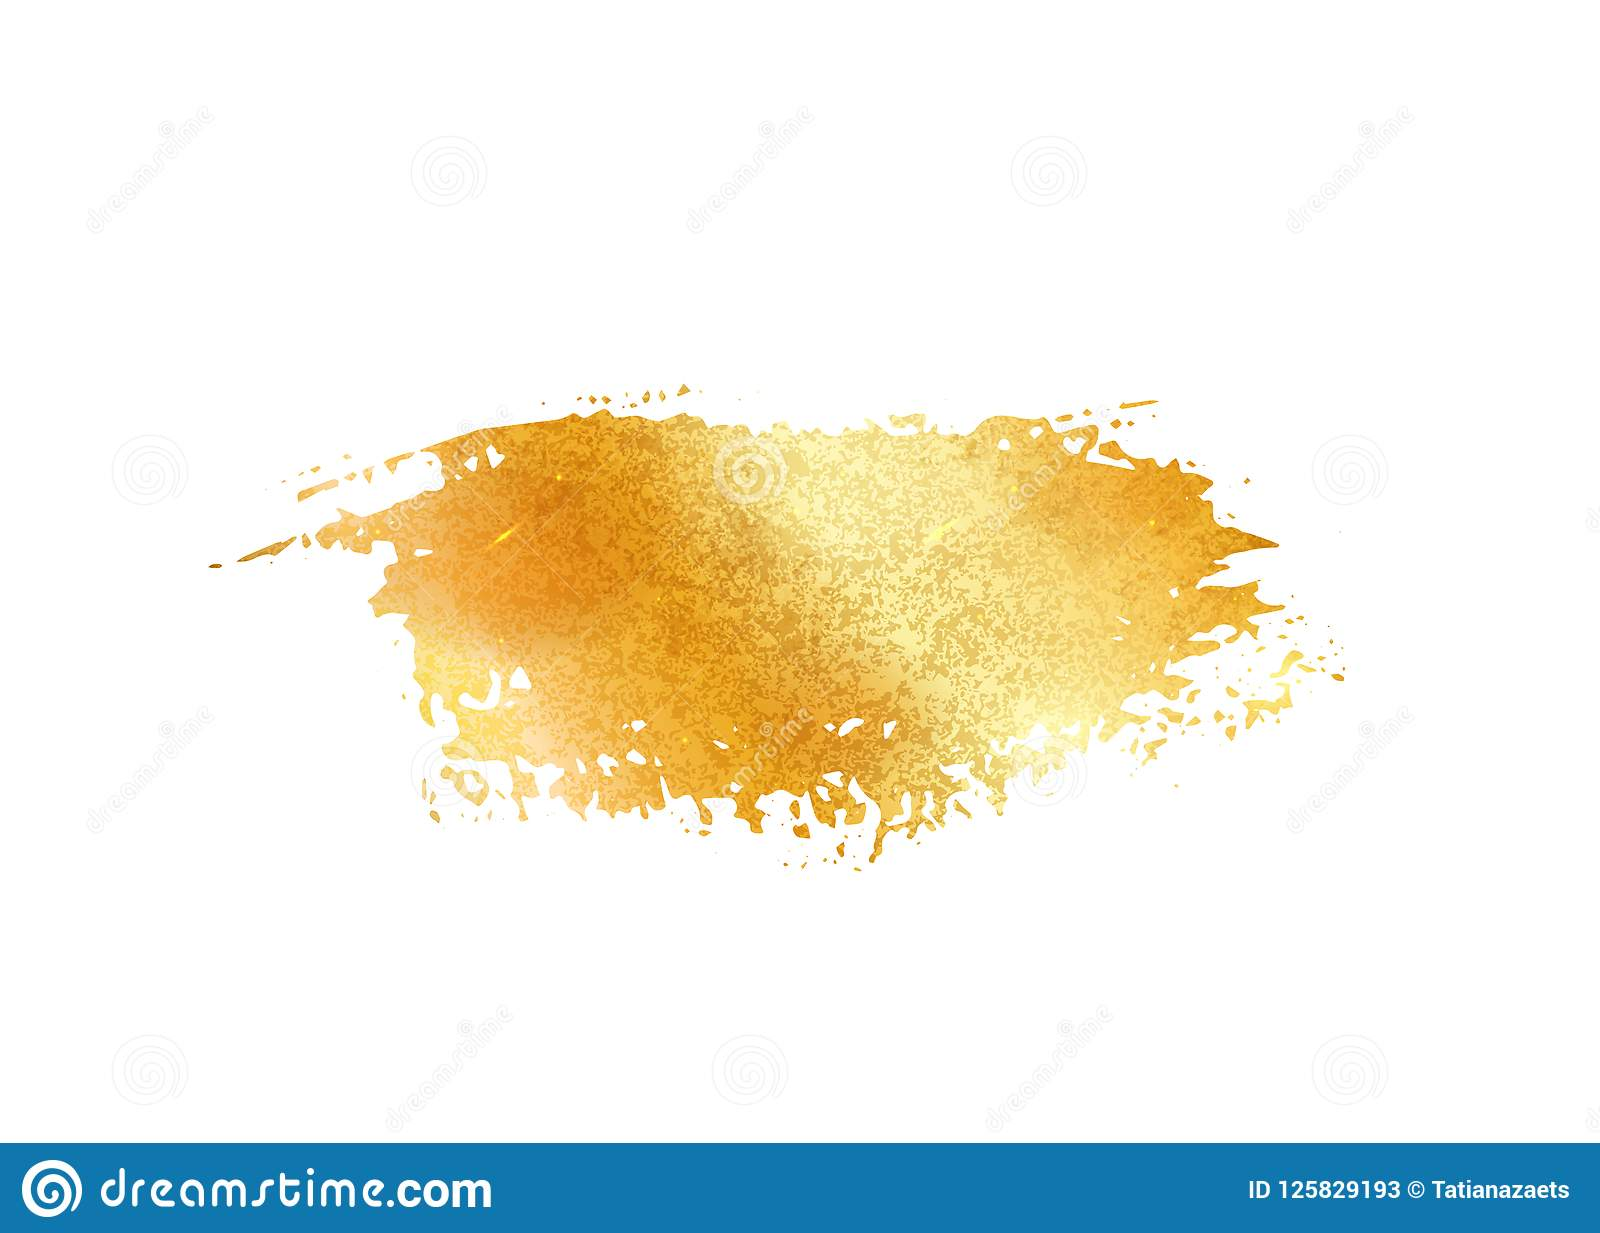 a49d95970631 Royalty-Free Vector. Gold glitter foil brush stroke vector. Golden paint  smear background isolated on white. Glow